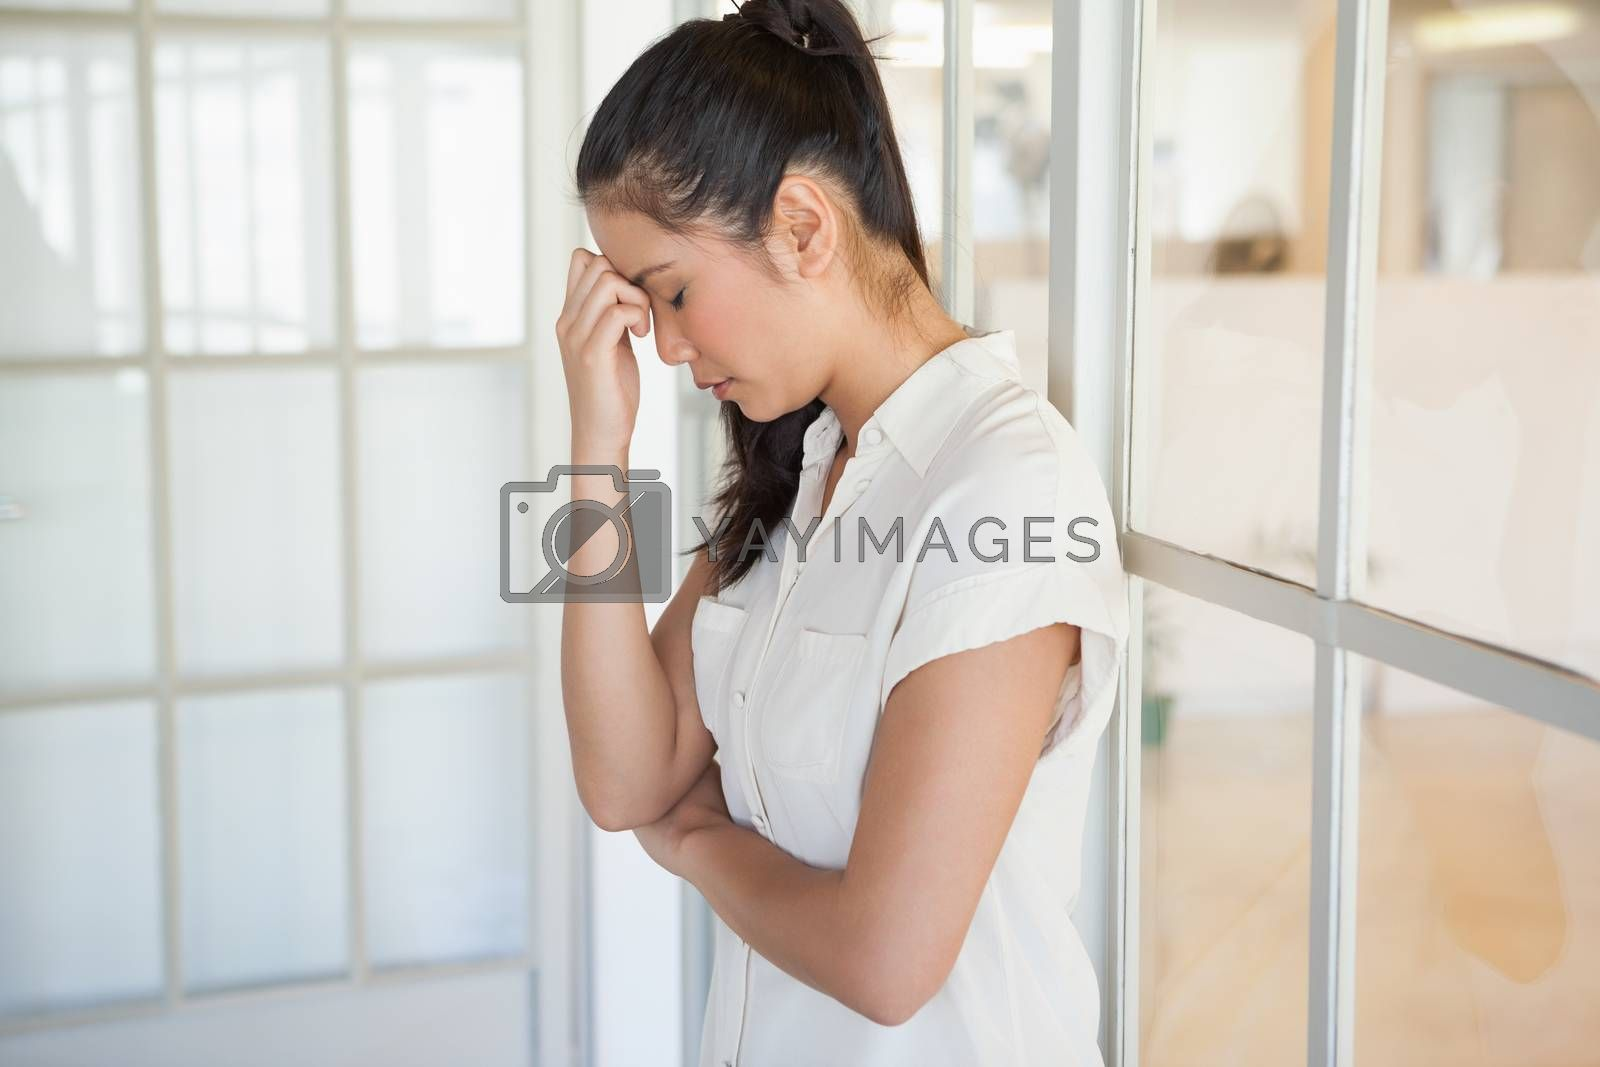 Royalty free image of Casual upset businesswoman with head bowed by Wavebreakmedia